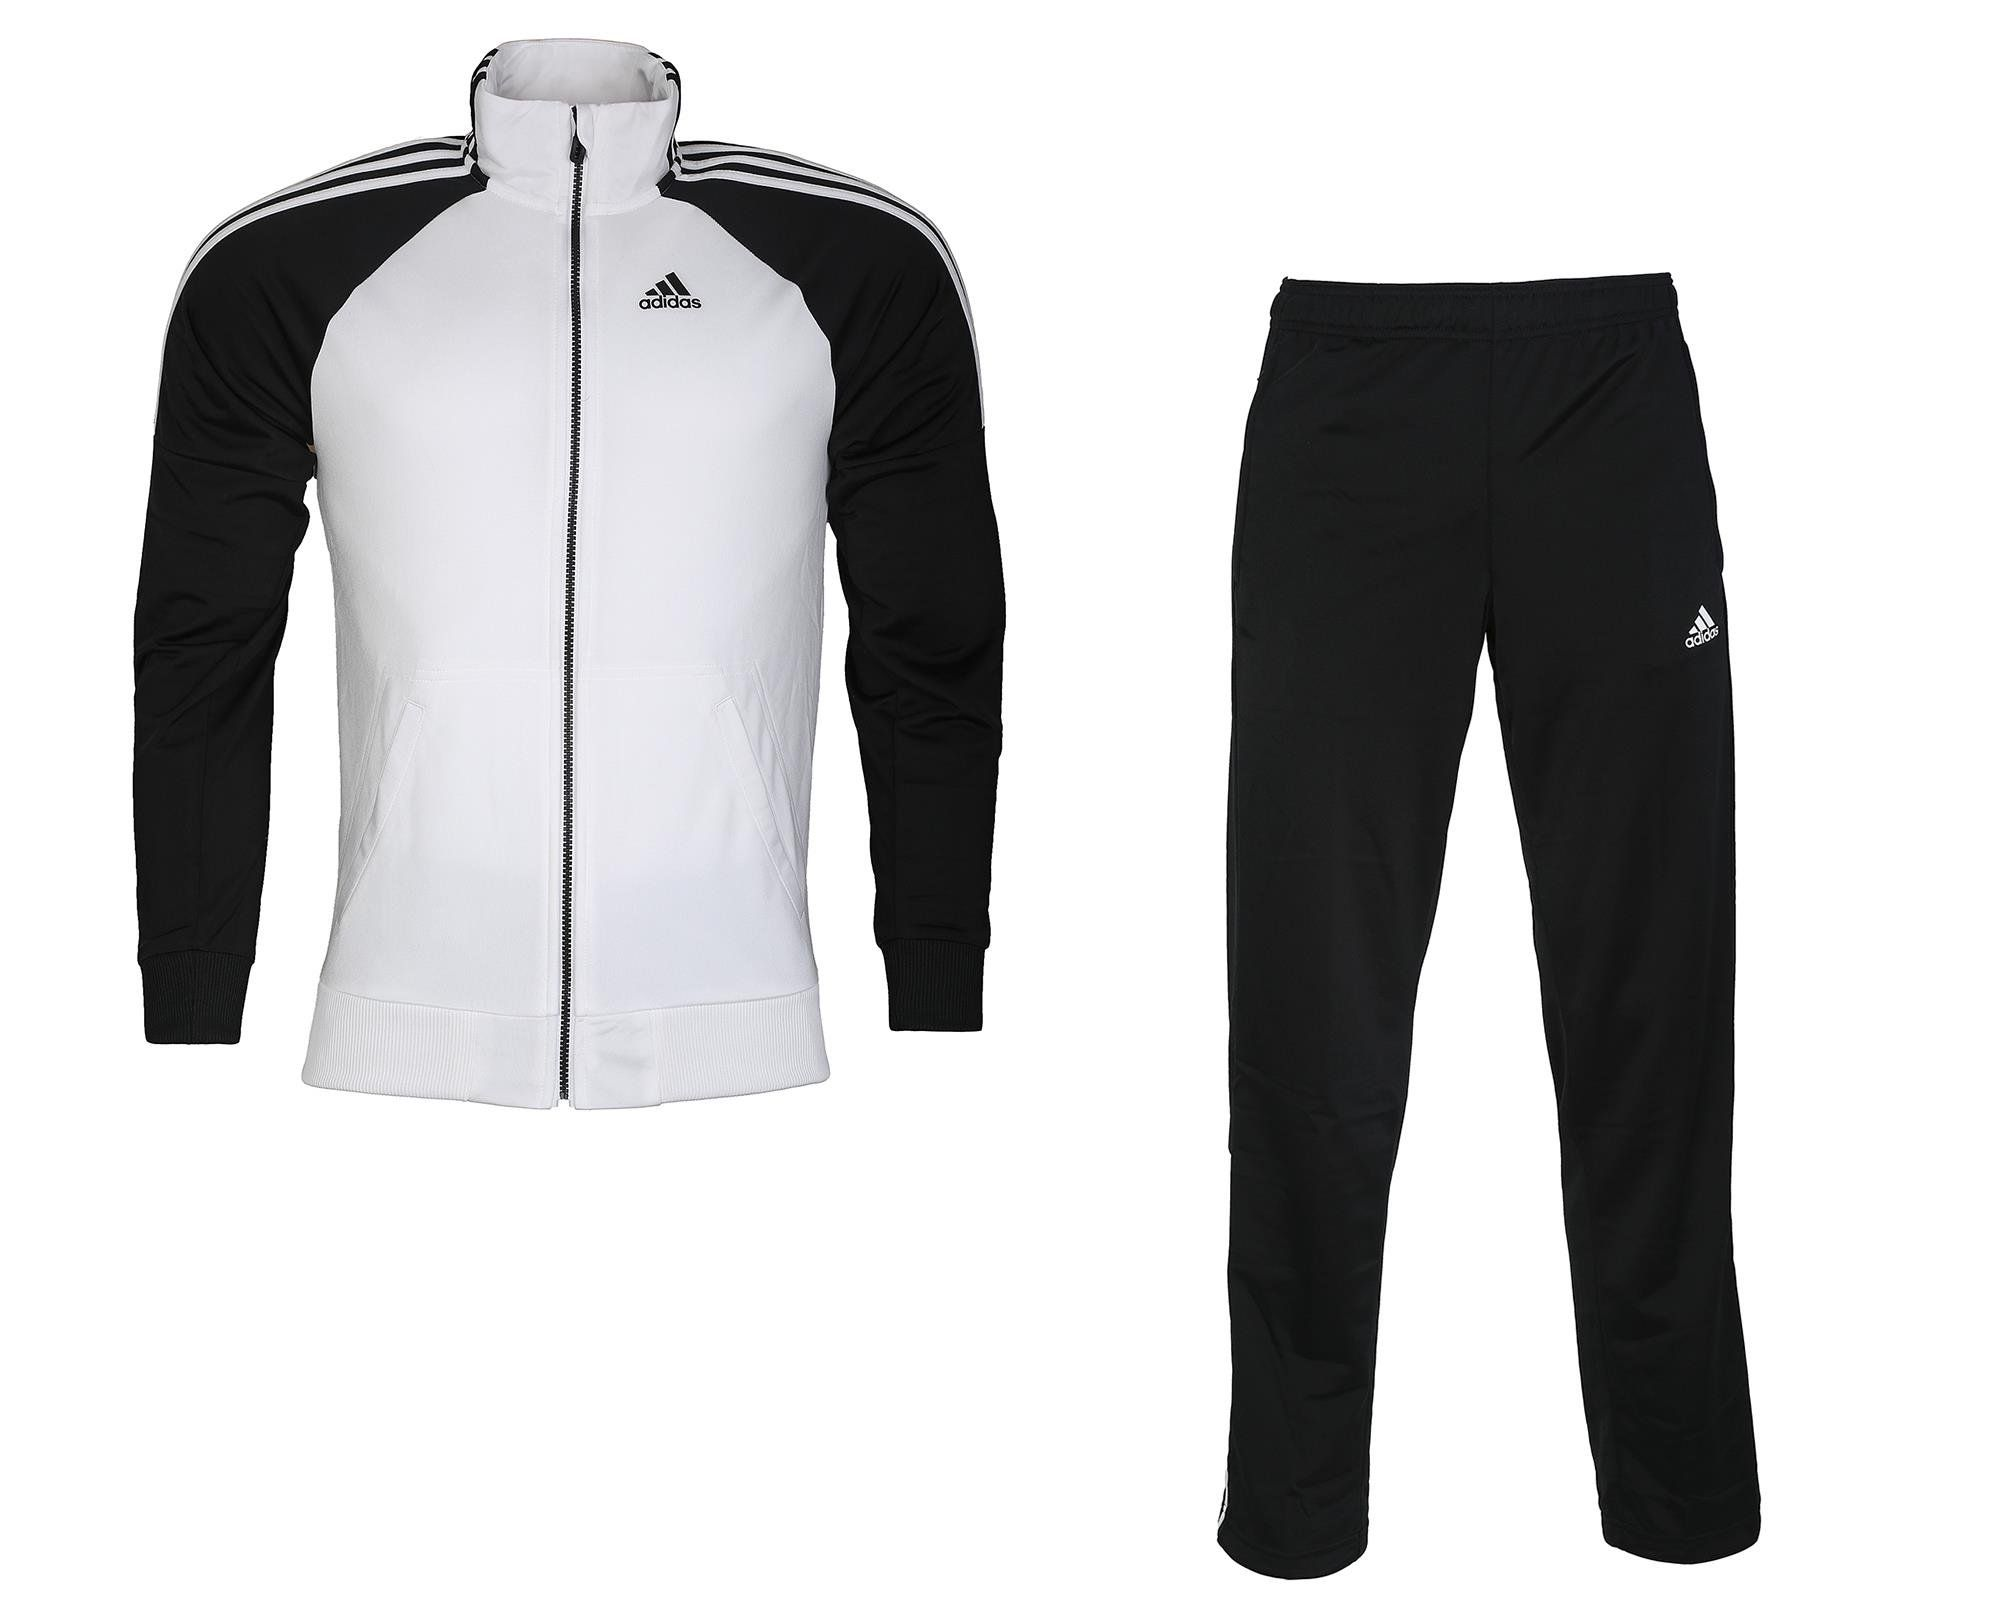 076af32e6602a Adidas Mens Men'S Zip-Up Tracksuit at Amazon Men's Clothing store ...